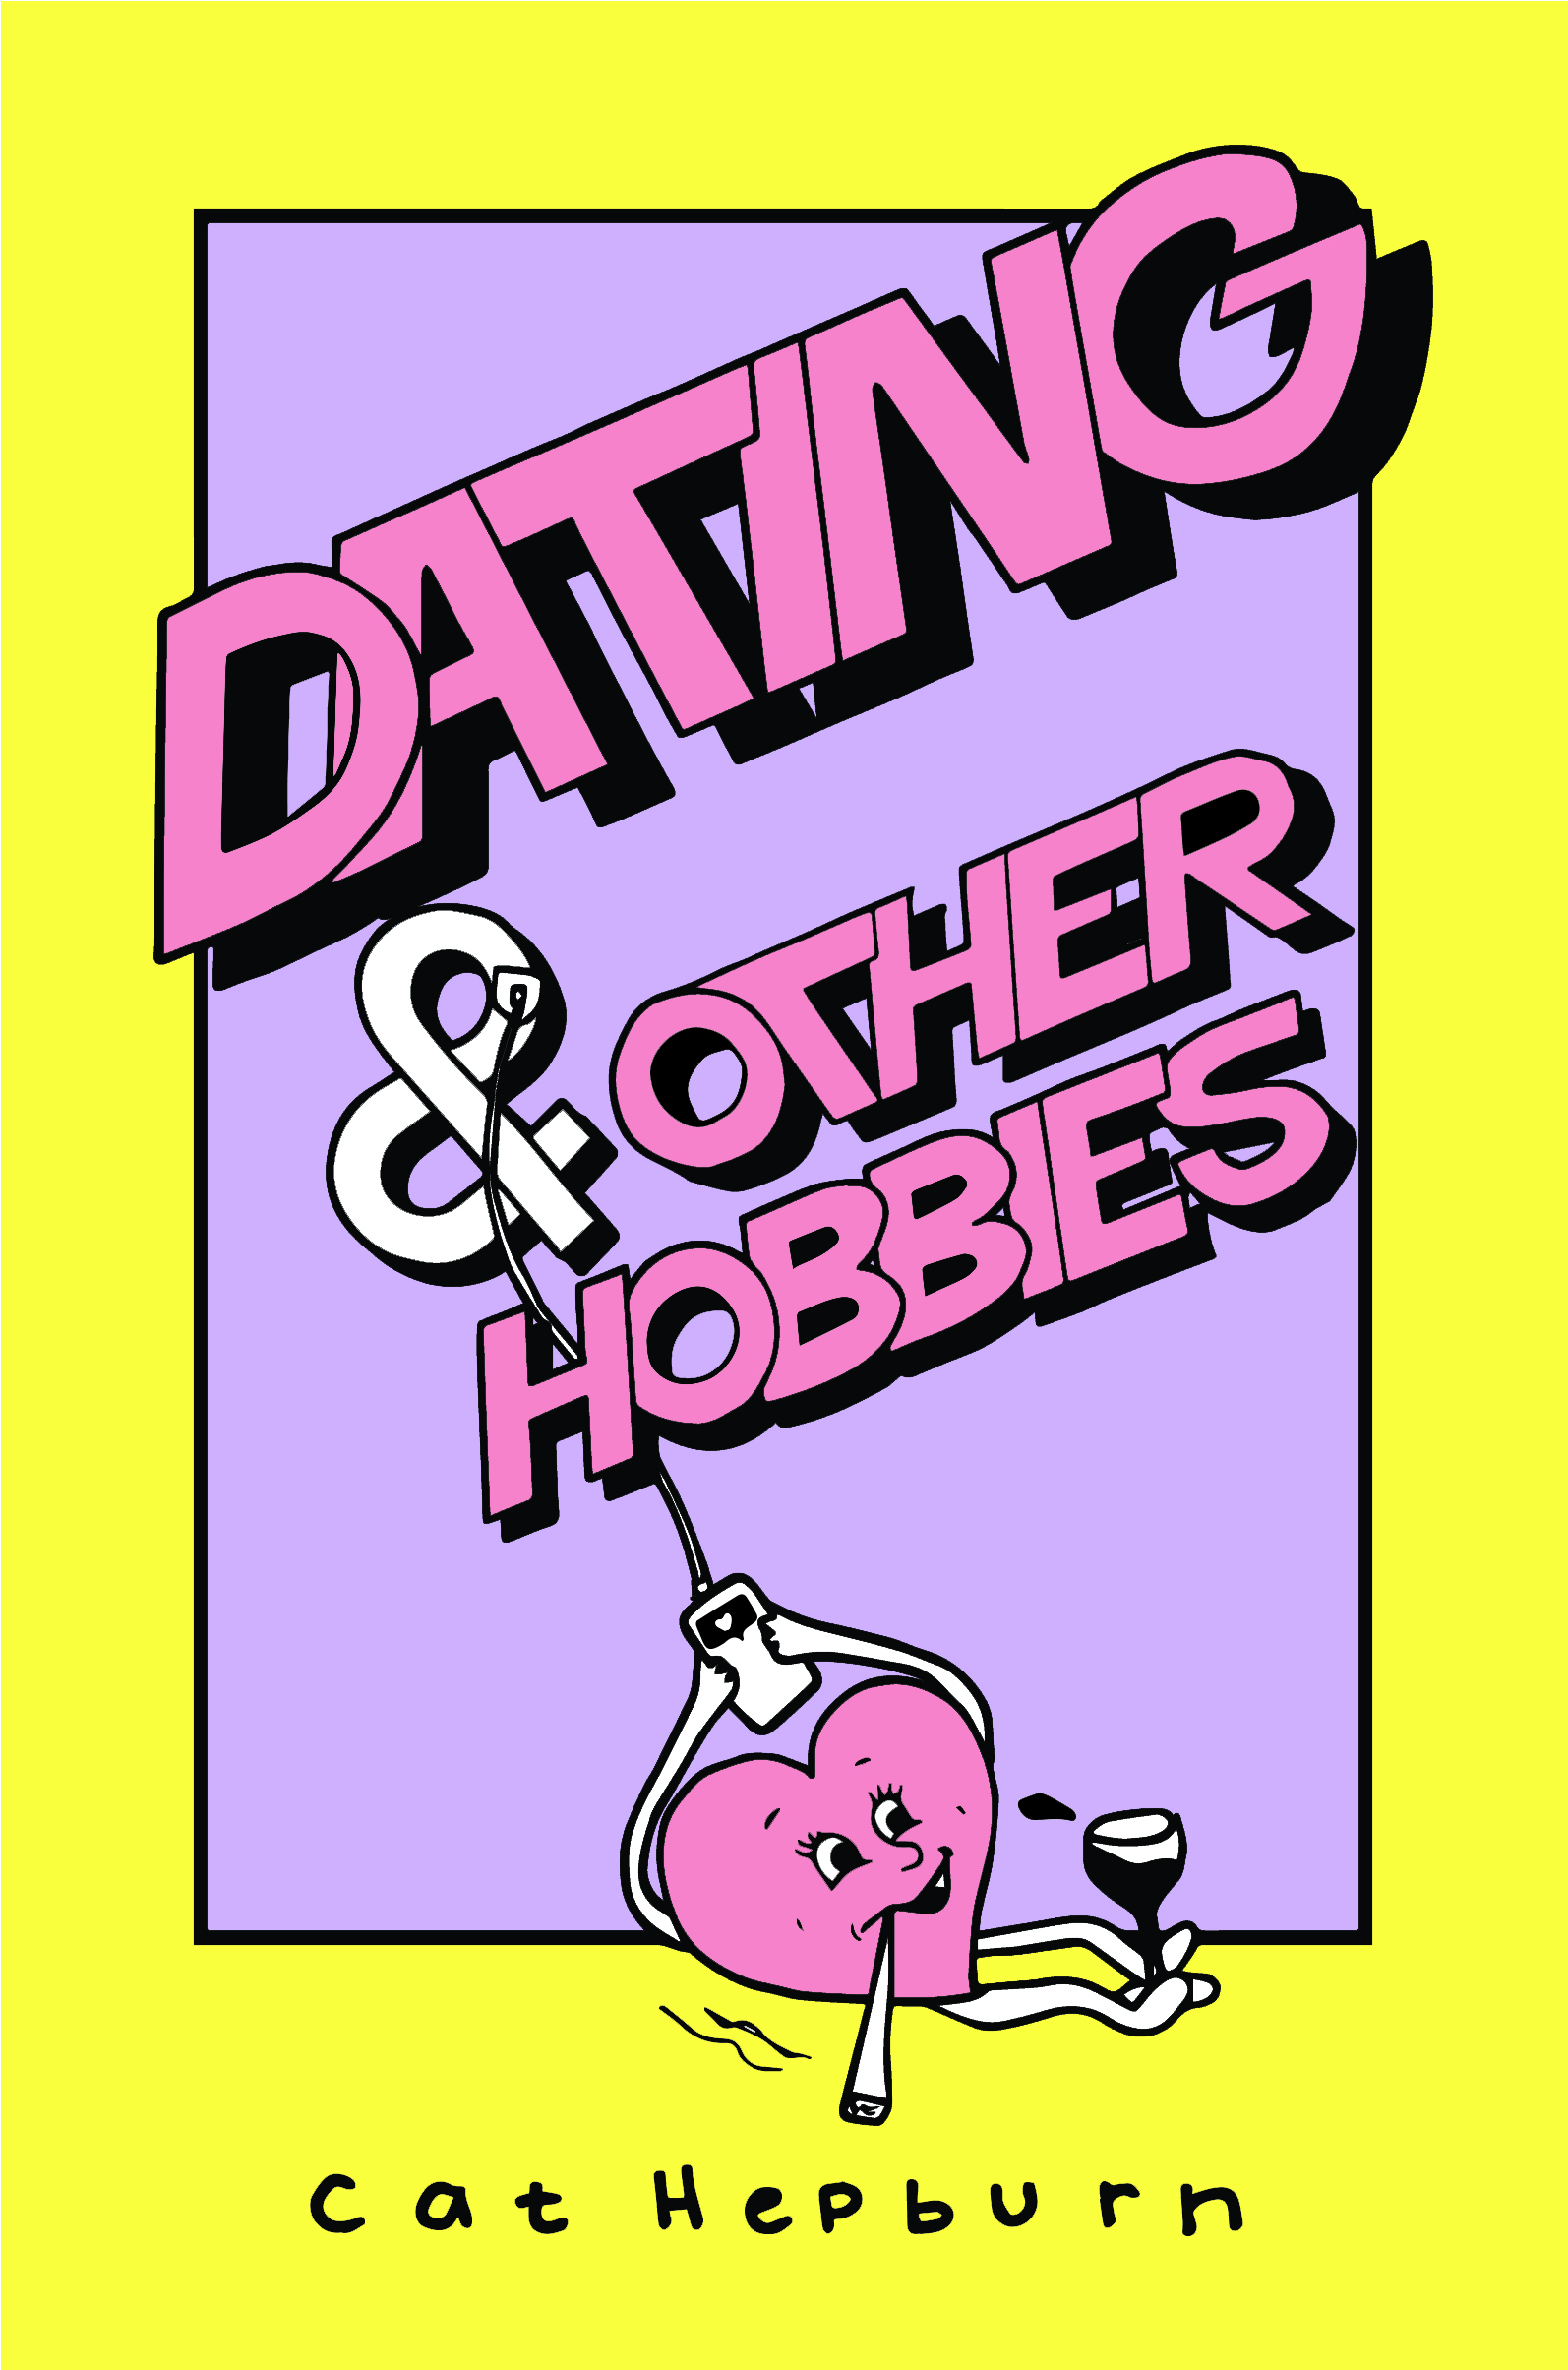 Dating & Other Hobbies